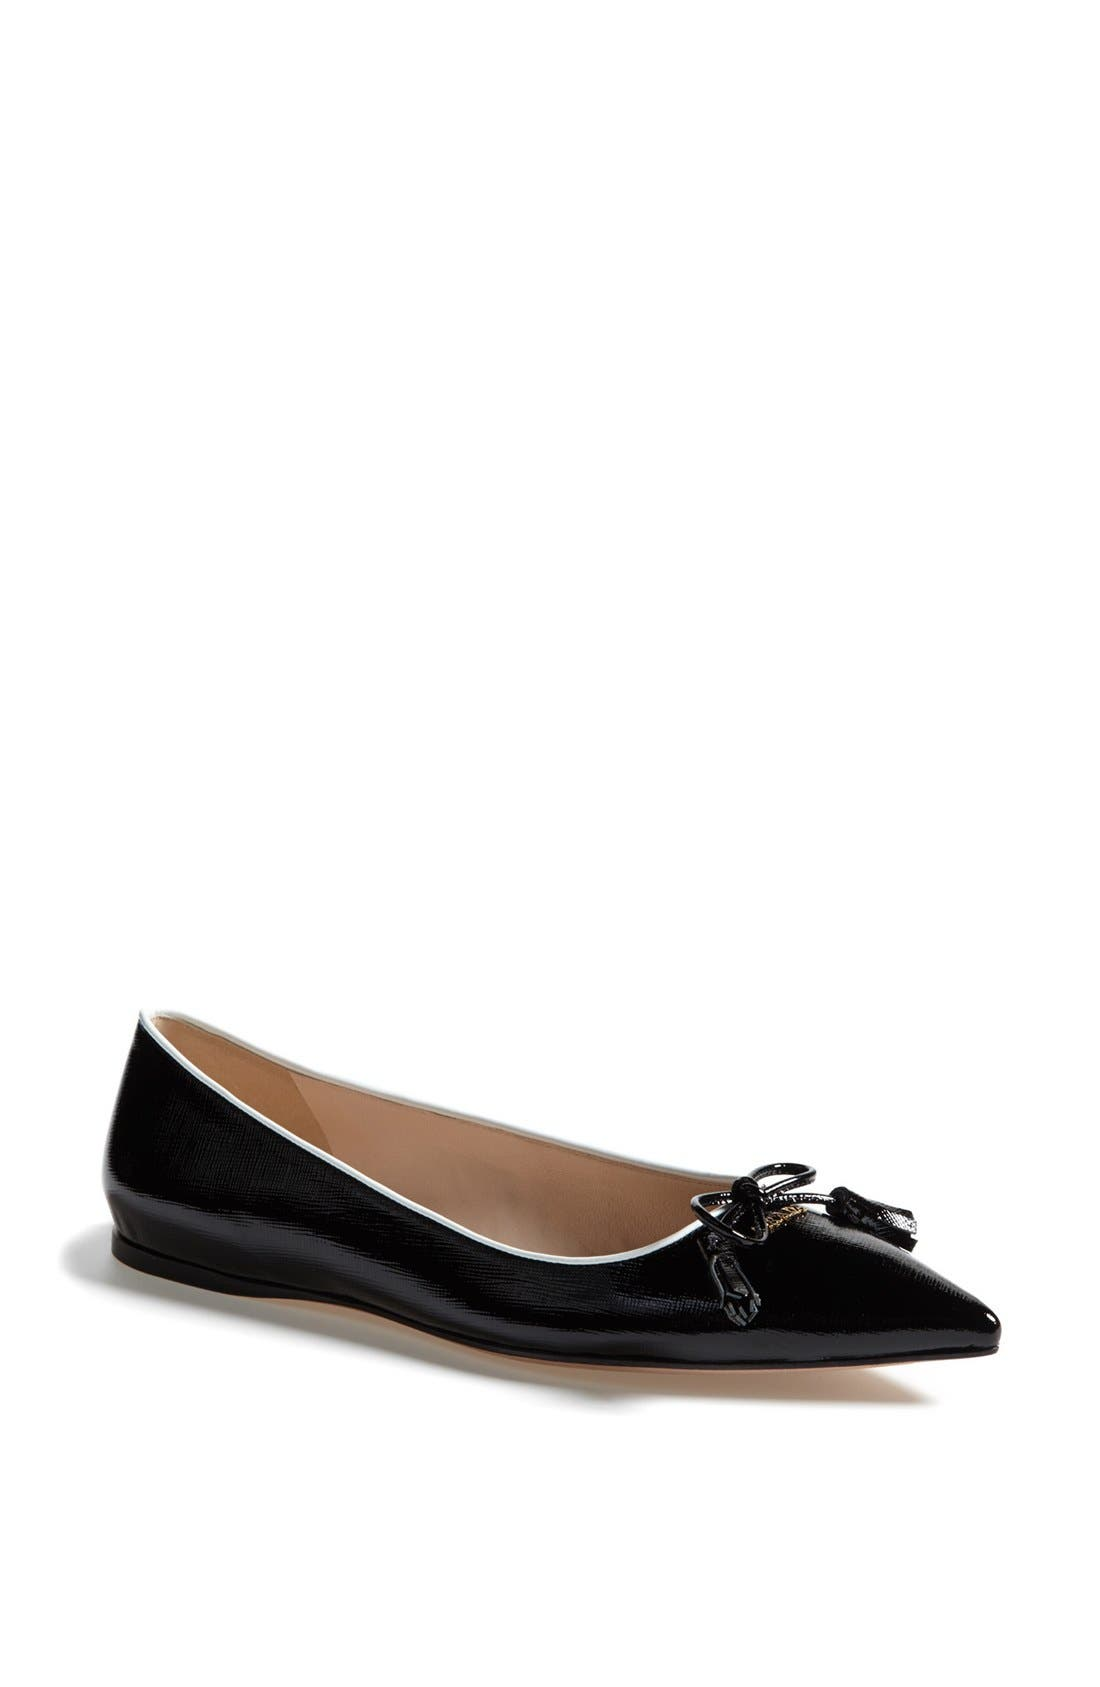 Alternate Image 1 Selected - Prada Pointed Toe Logo Ballet Flat